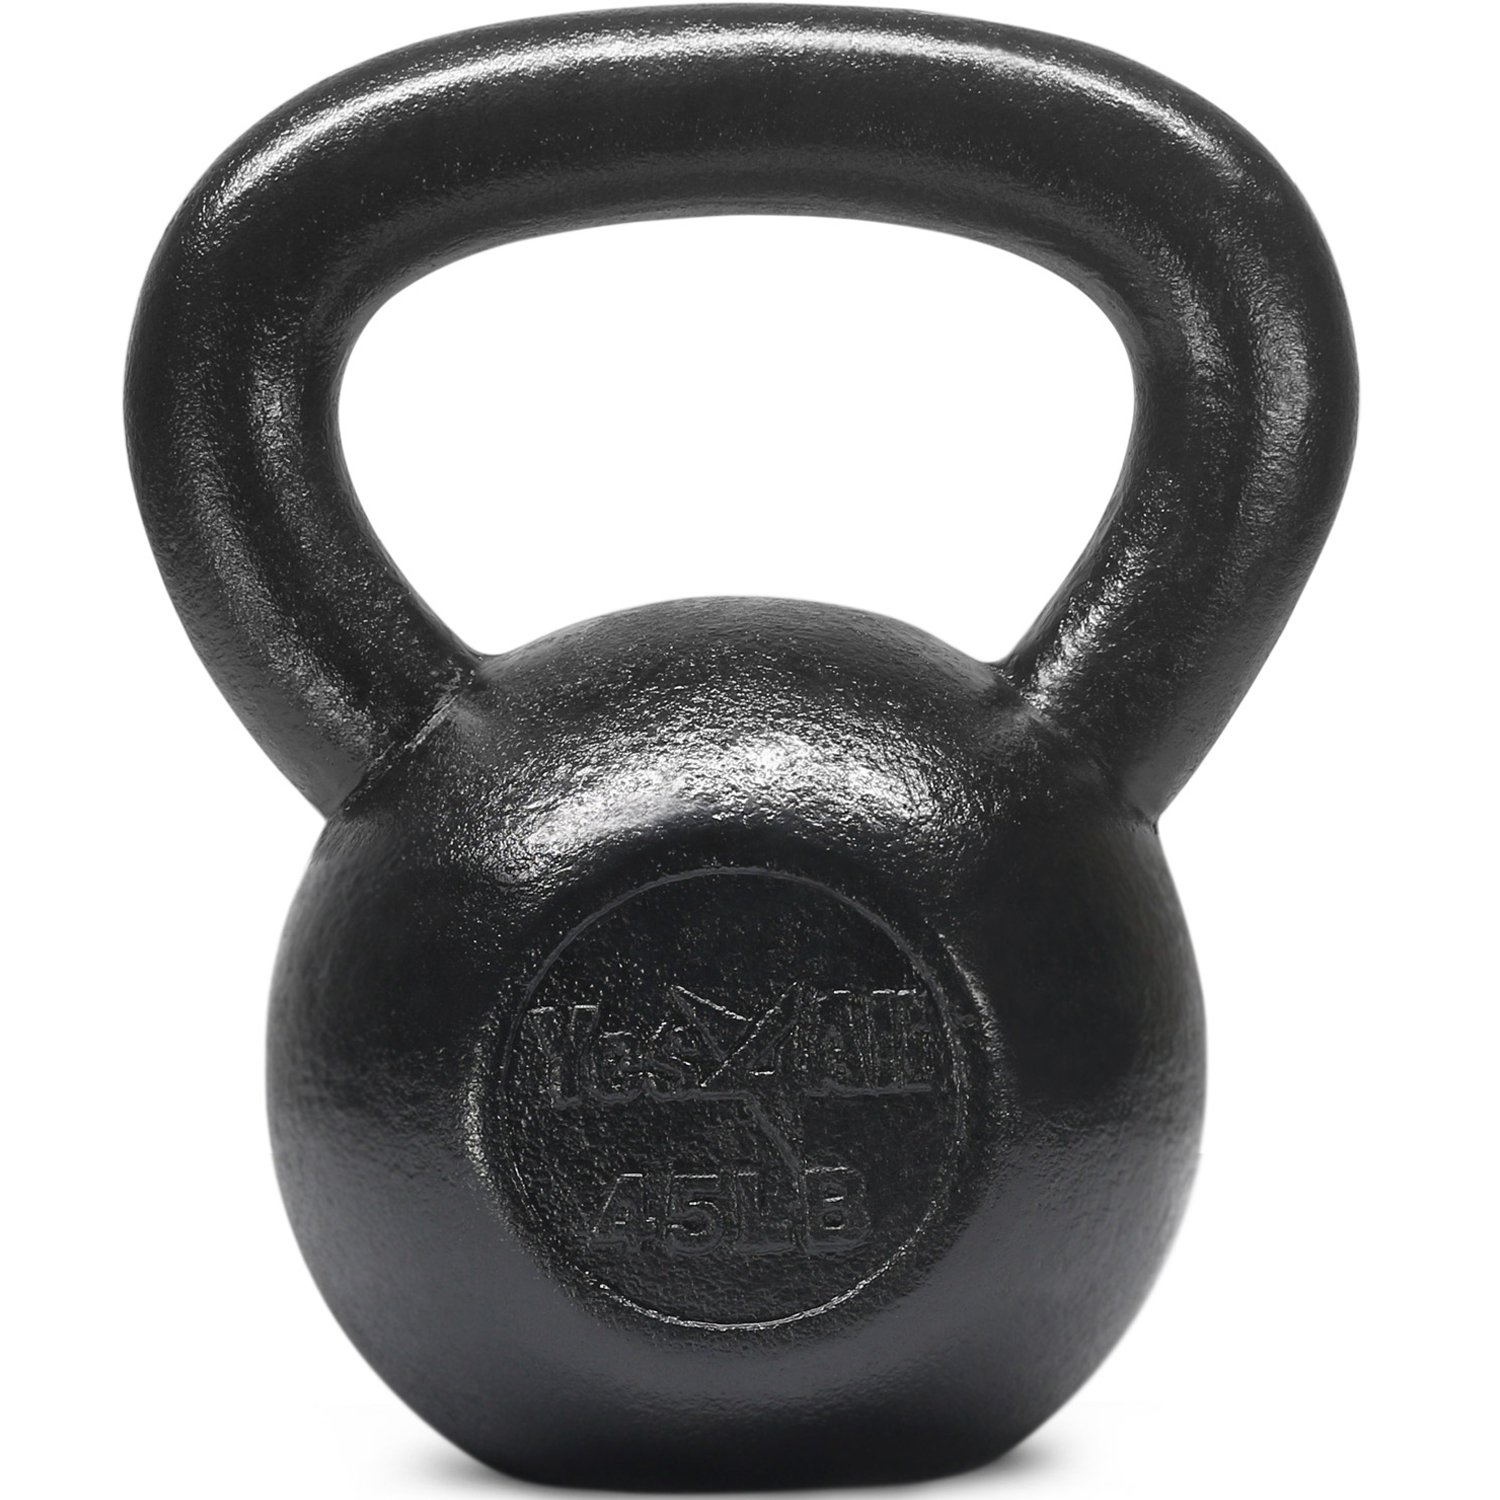 Yes4All Solid Cast Iron Kettlebells – Weight Available: 5, 10, 15, 20, 25 to 80 lbs (L - Black 45lb)